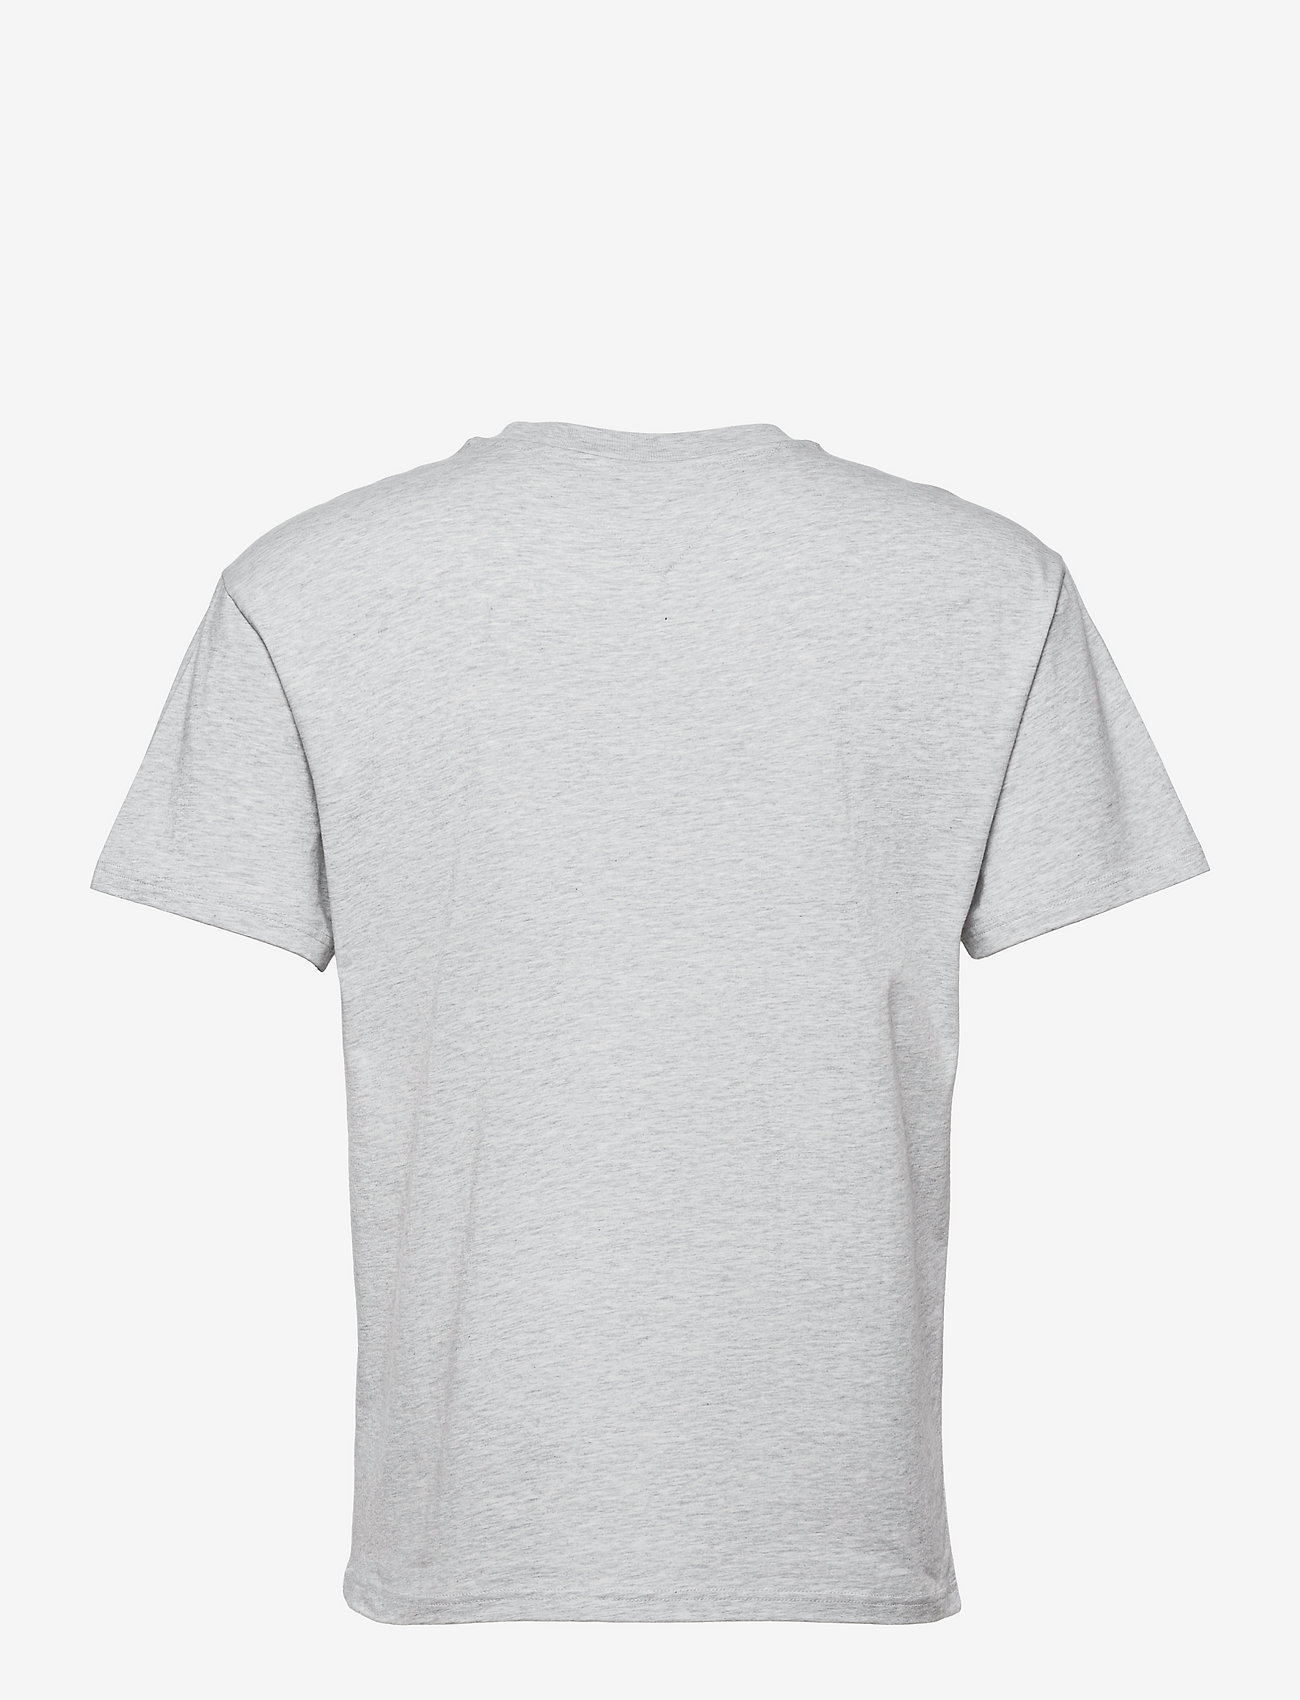 Tommy Jeans - TJM FADED COLOR GRAPHIC TEE - kortärmade t-shirts - silver grey htr - 1